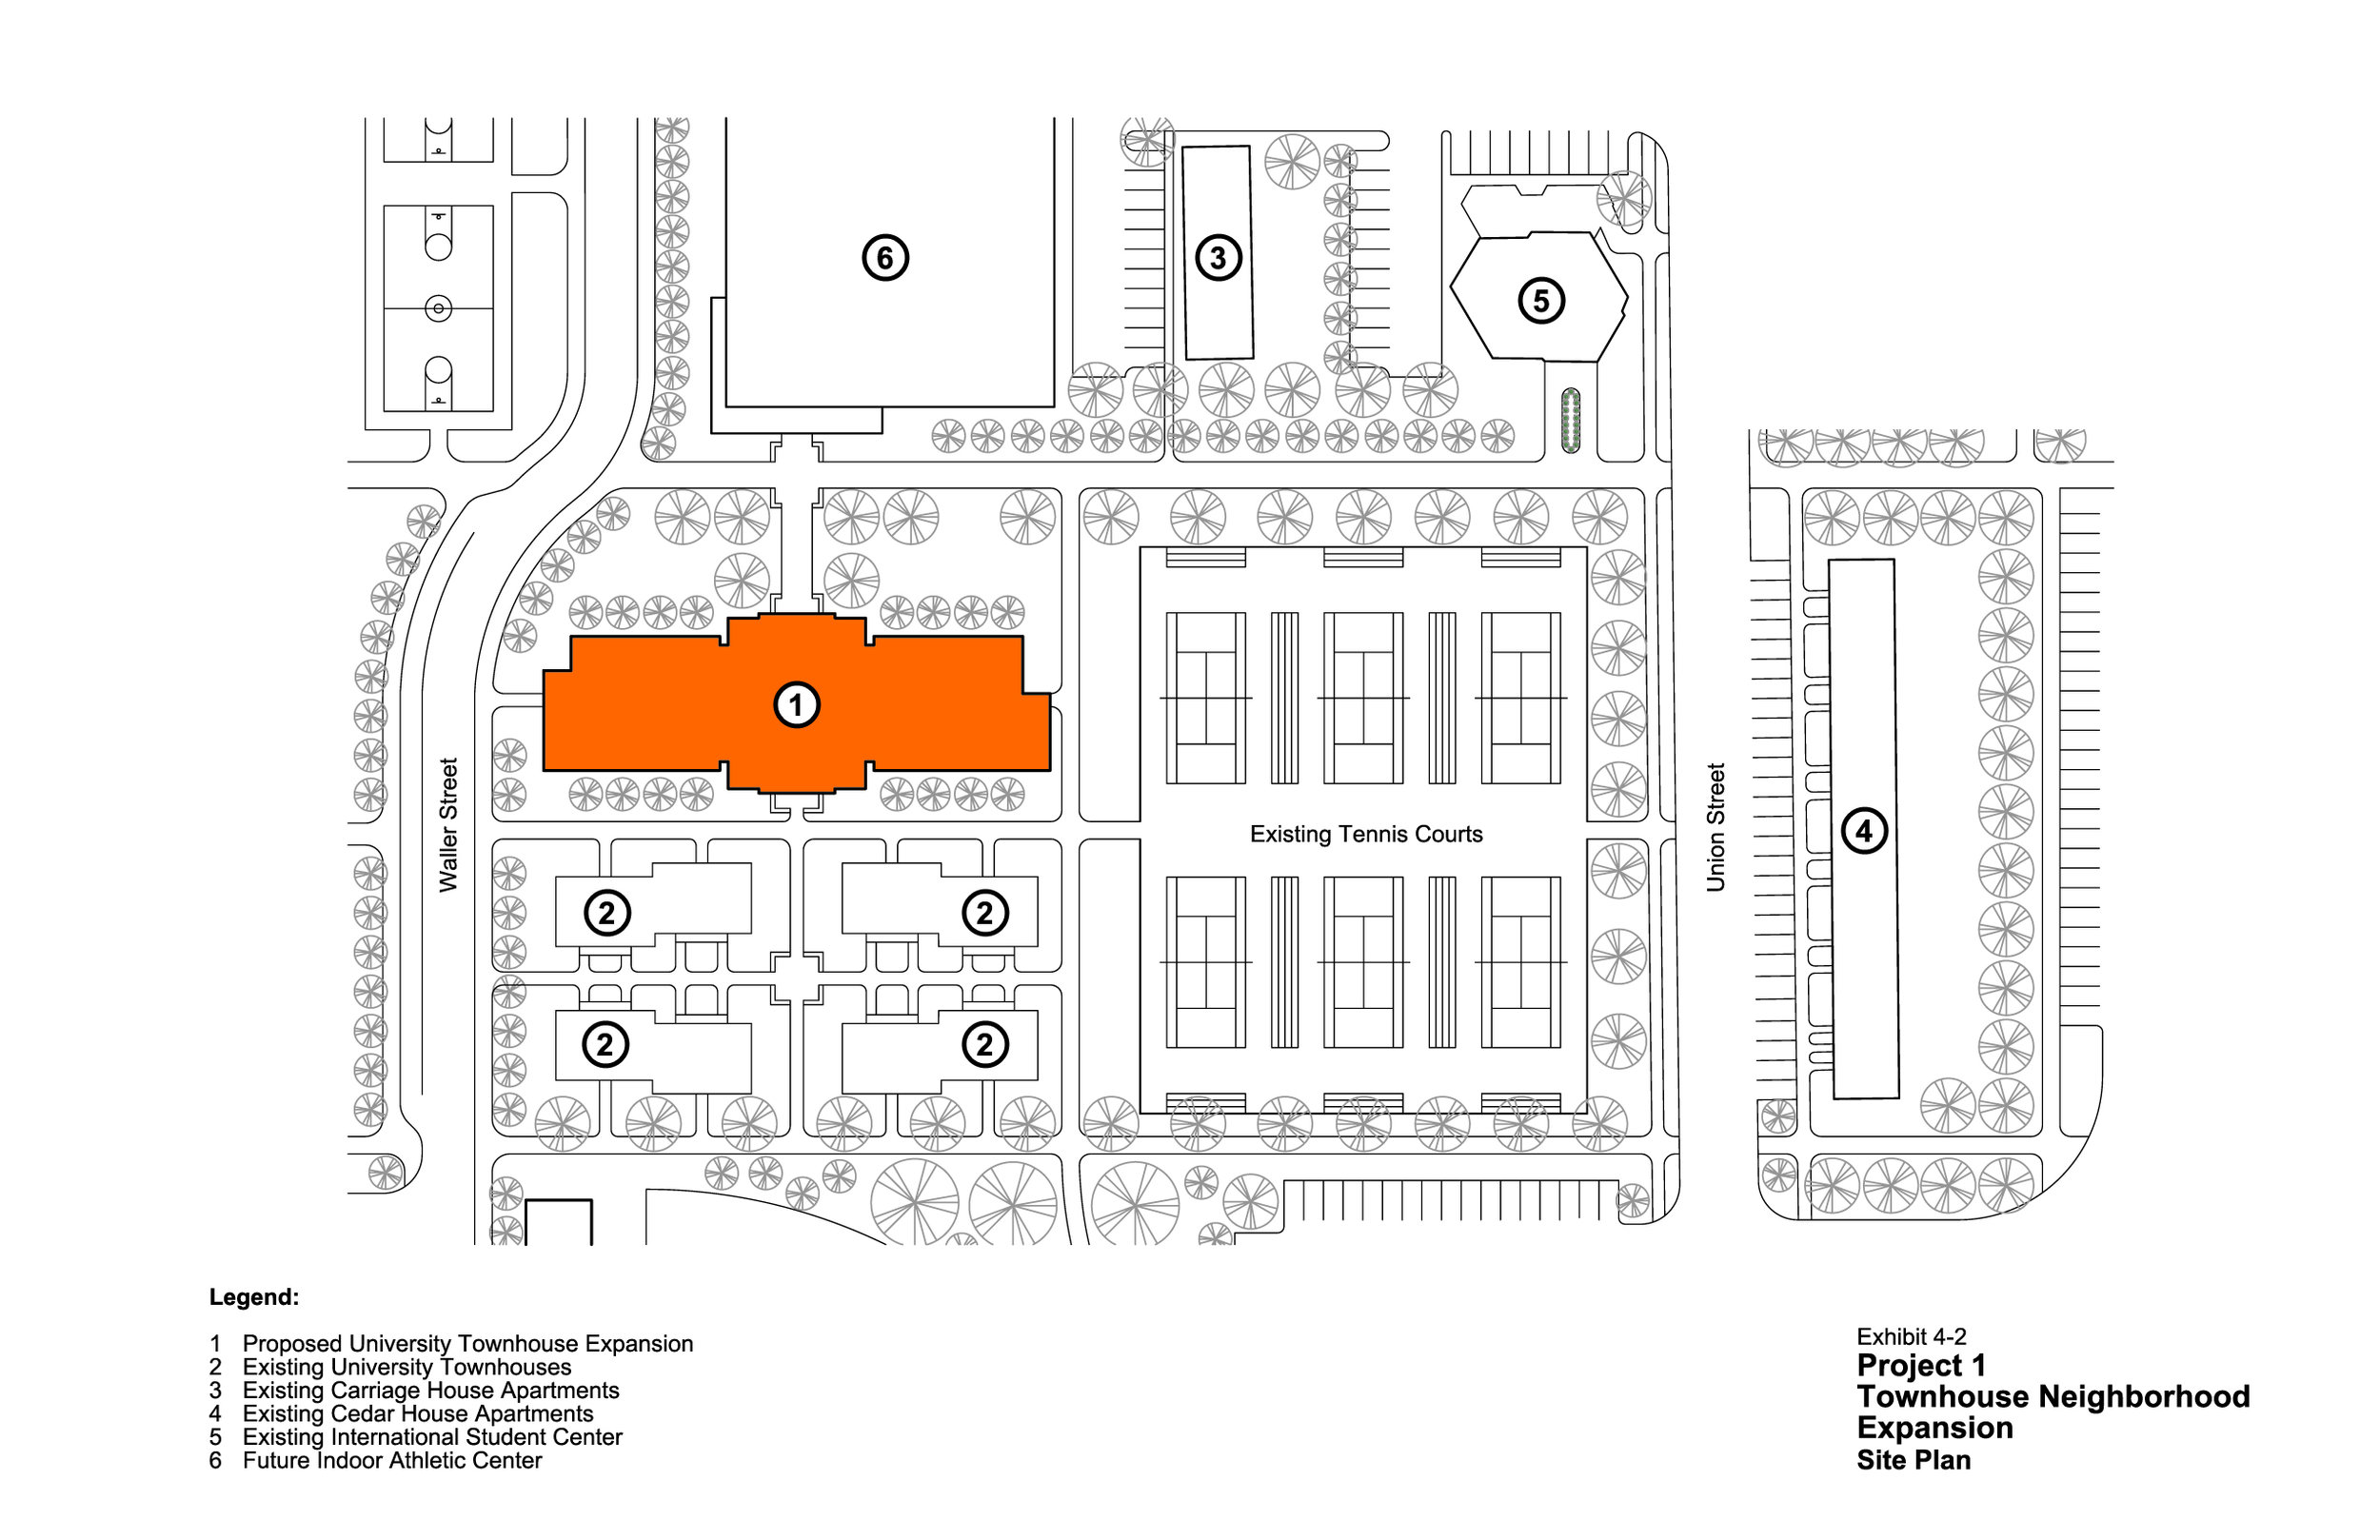 Exhibit4-2_Project 1 Site Plan.jpg